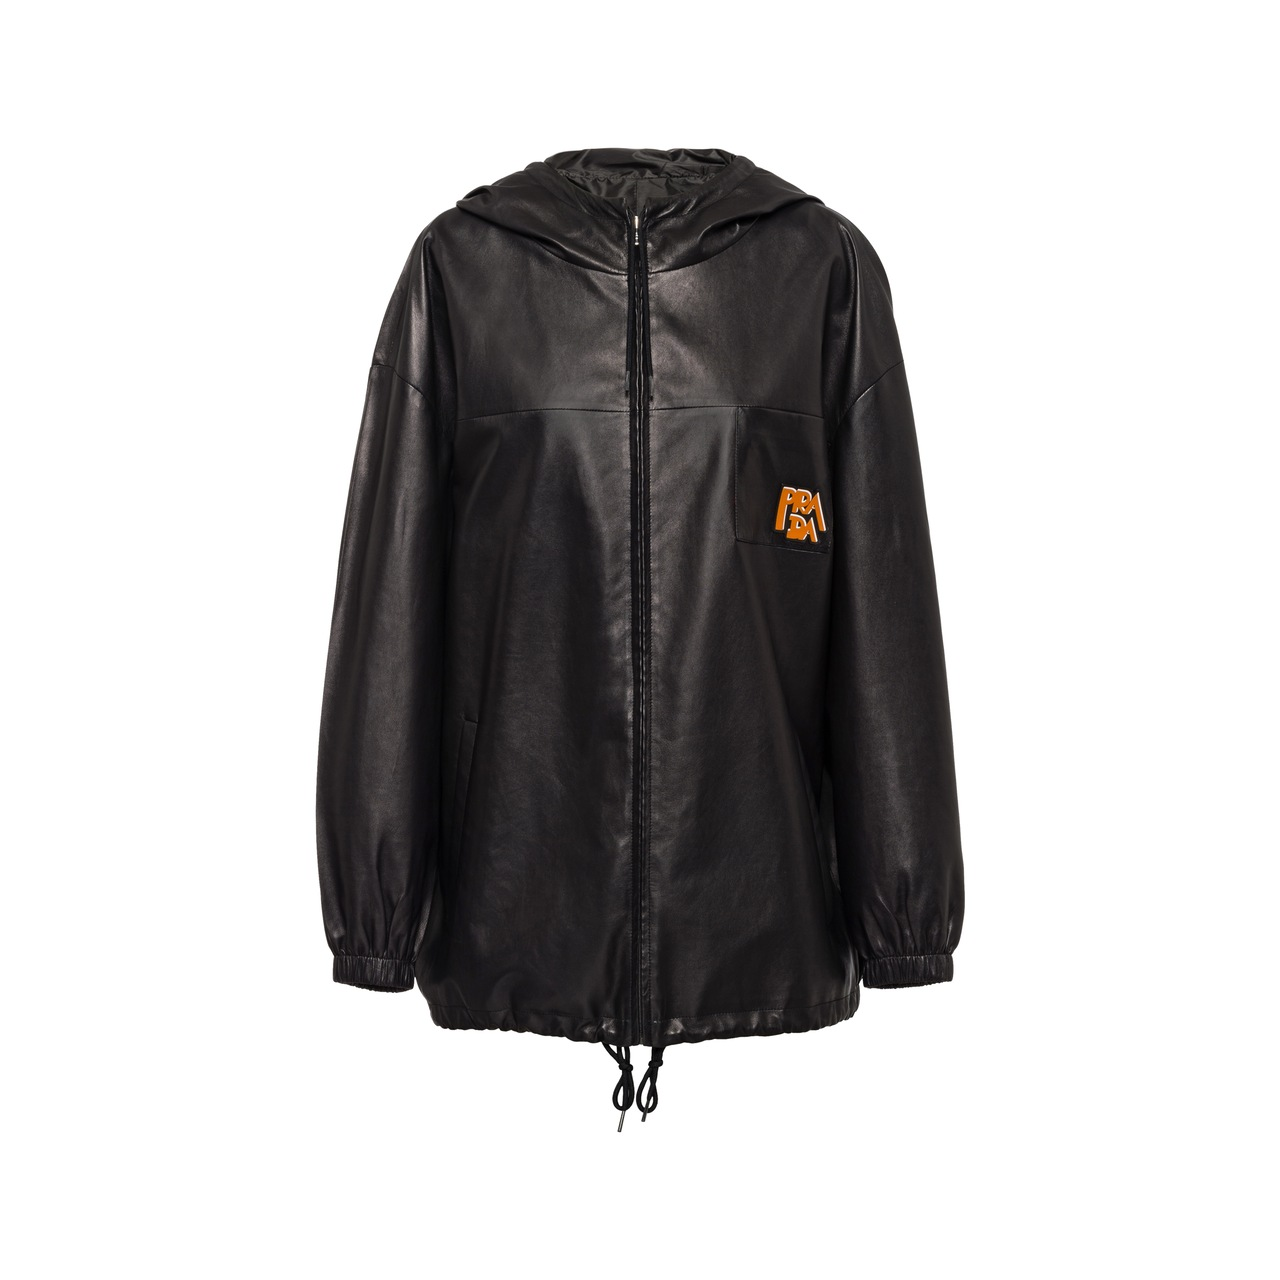 Nappa leather hooded jacket